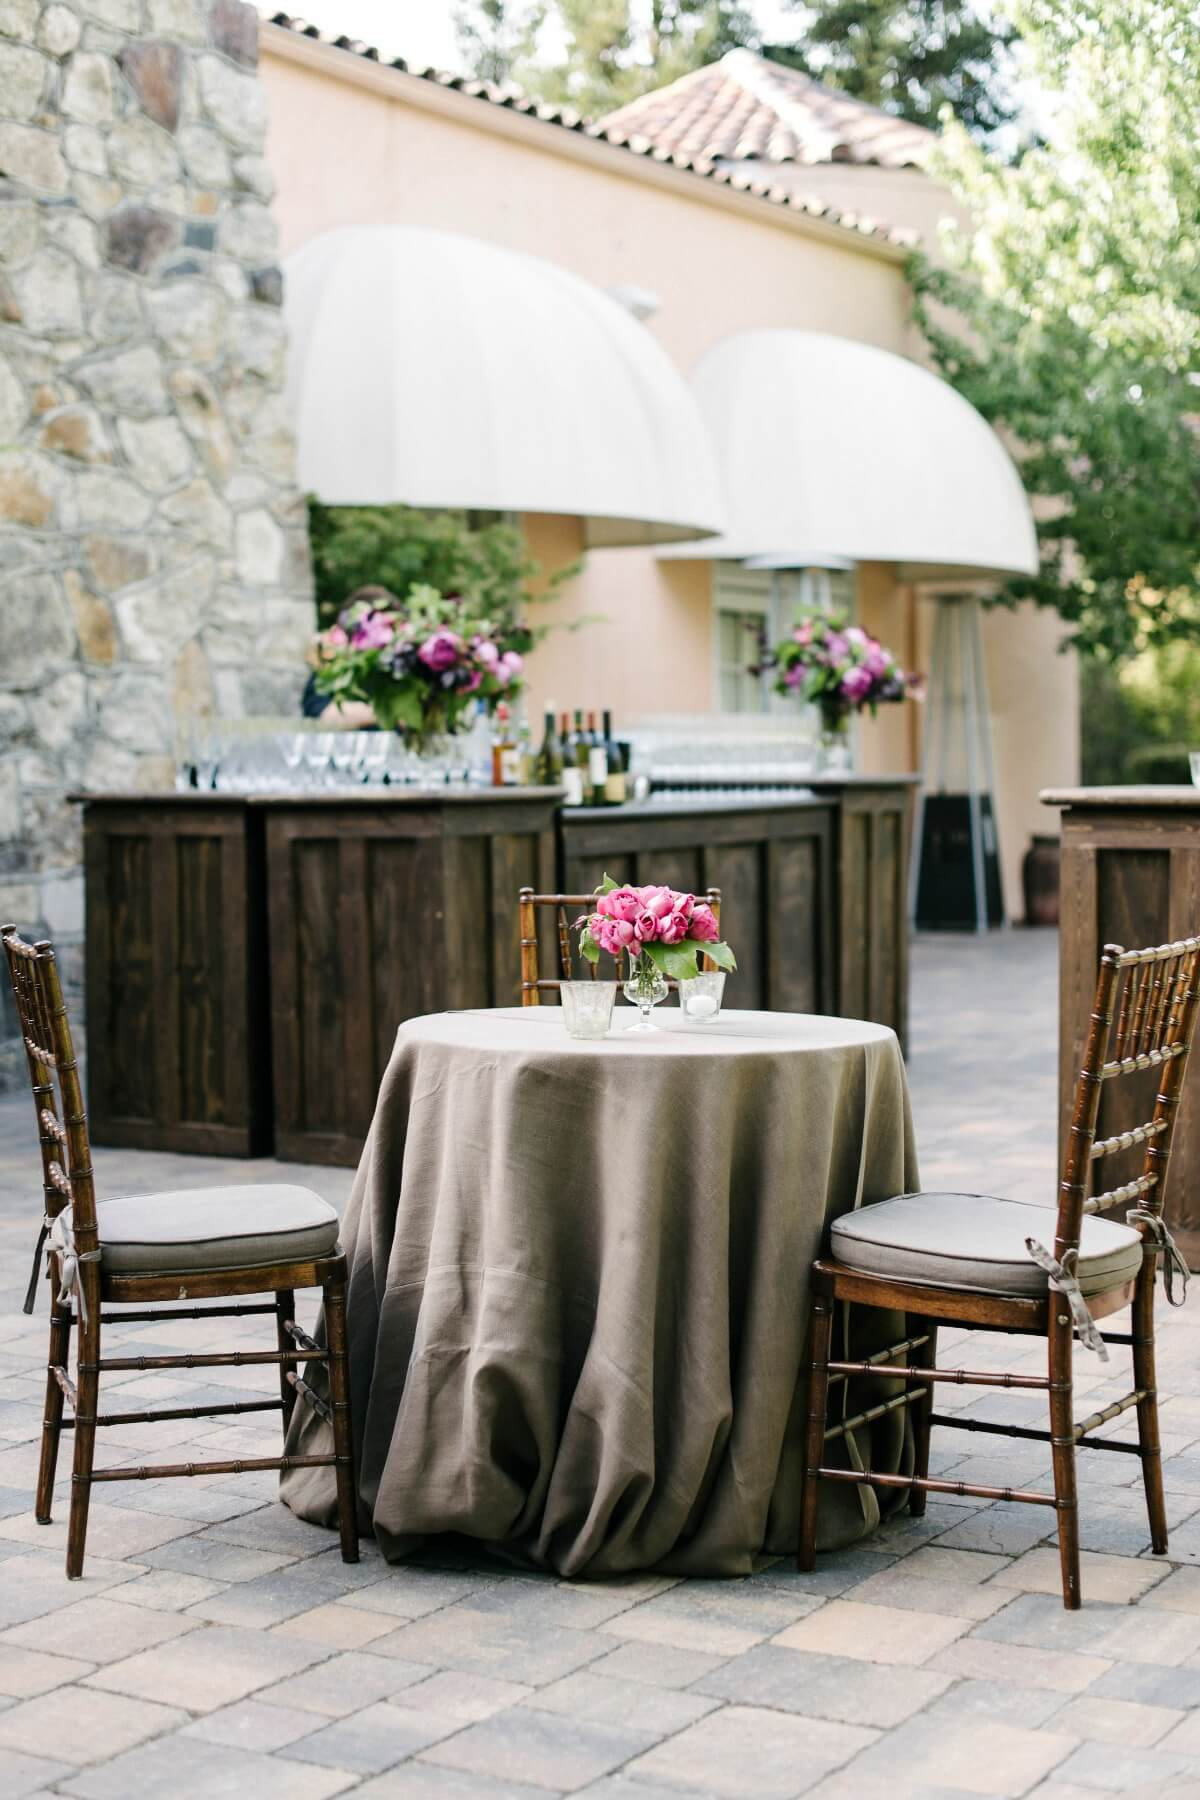 Melanie Duerkopp Photography, Wedding Photography, Sonoma Wedding, Fairmont Wedding, Romantic Pastel Sonoma Wedding, Laurie Arons, Kathleen Deery Design, Pitbulls and Posies, Fairmont Sonoma, La Tavola Linen